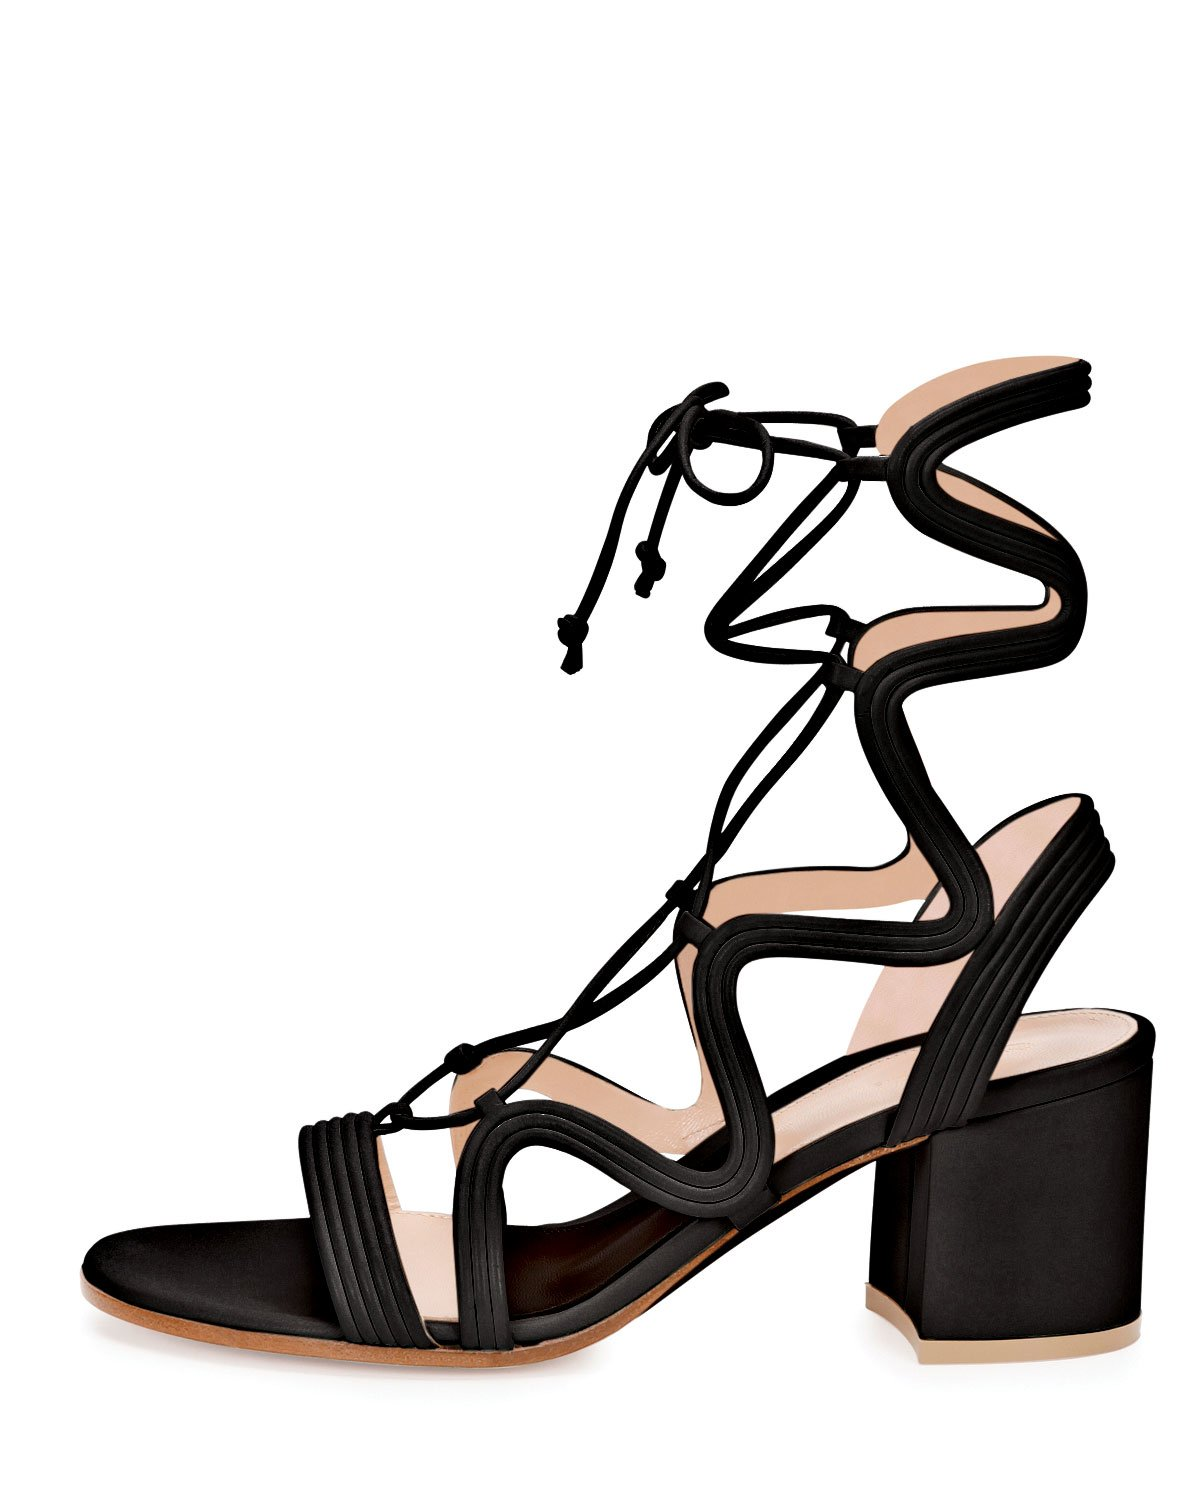 Gianvito rossi Loop-caged Low-heel Gladiator Sandal in Black | Lyst